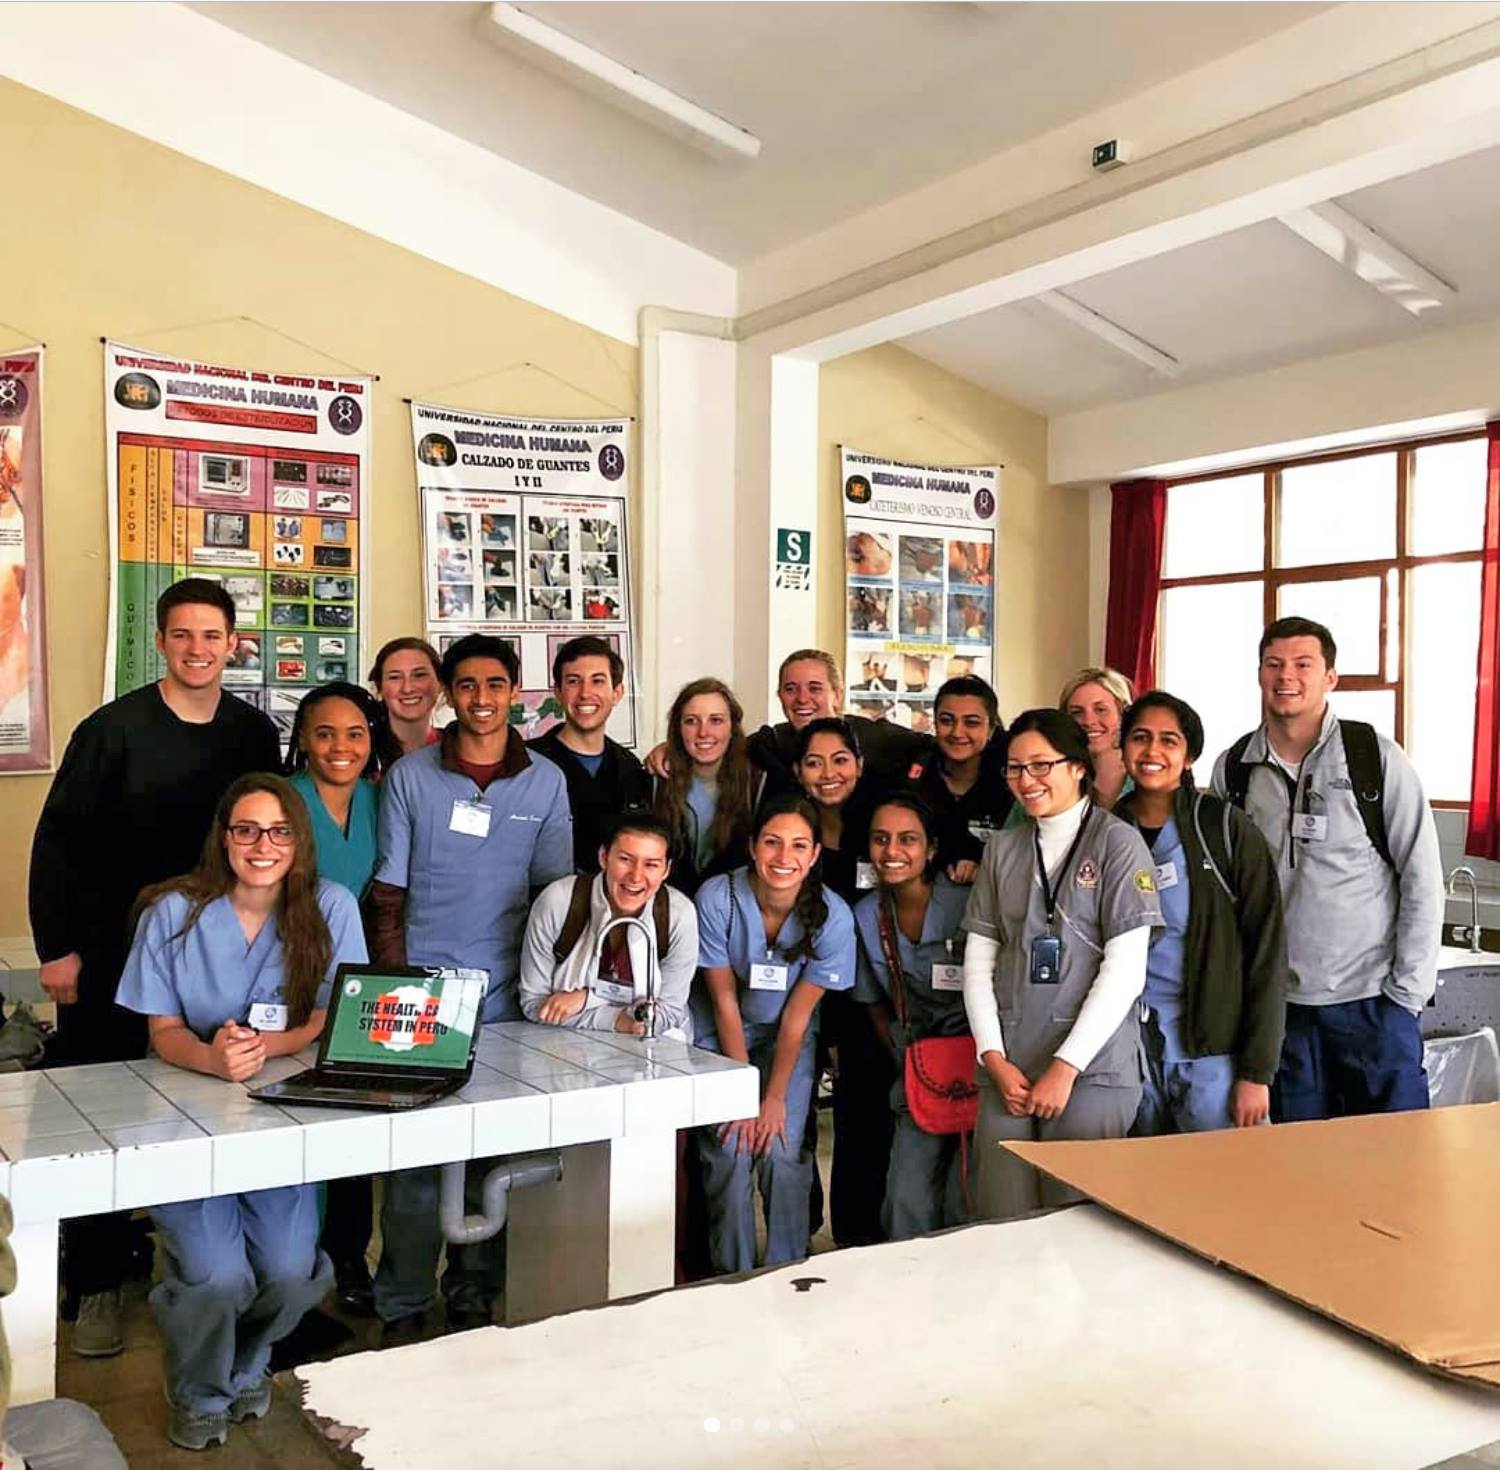 Home visits and clinical rounds with local health posts and hospitals in Huancayo, Peru.